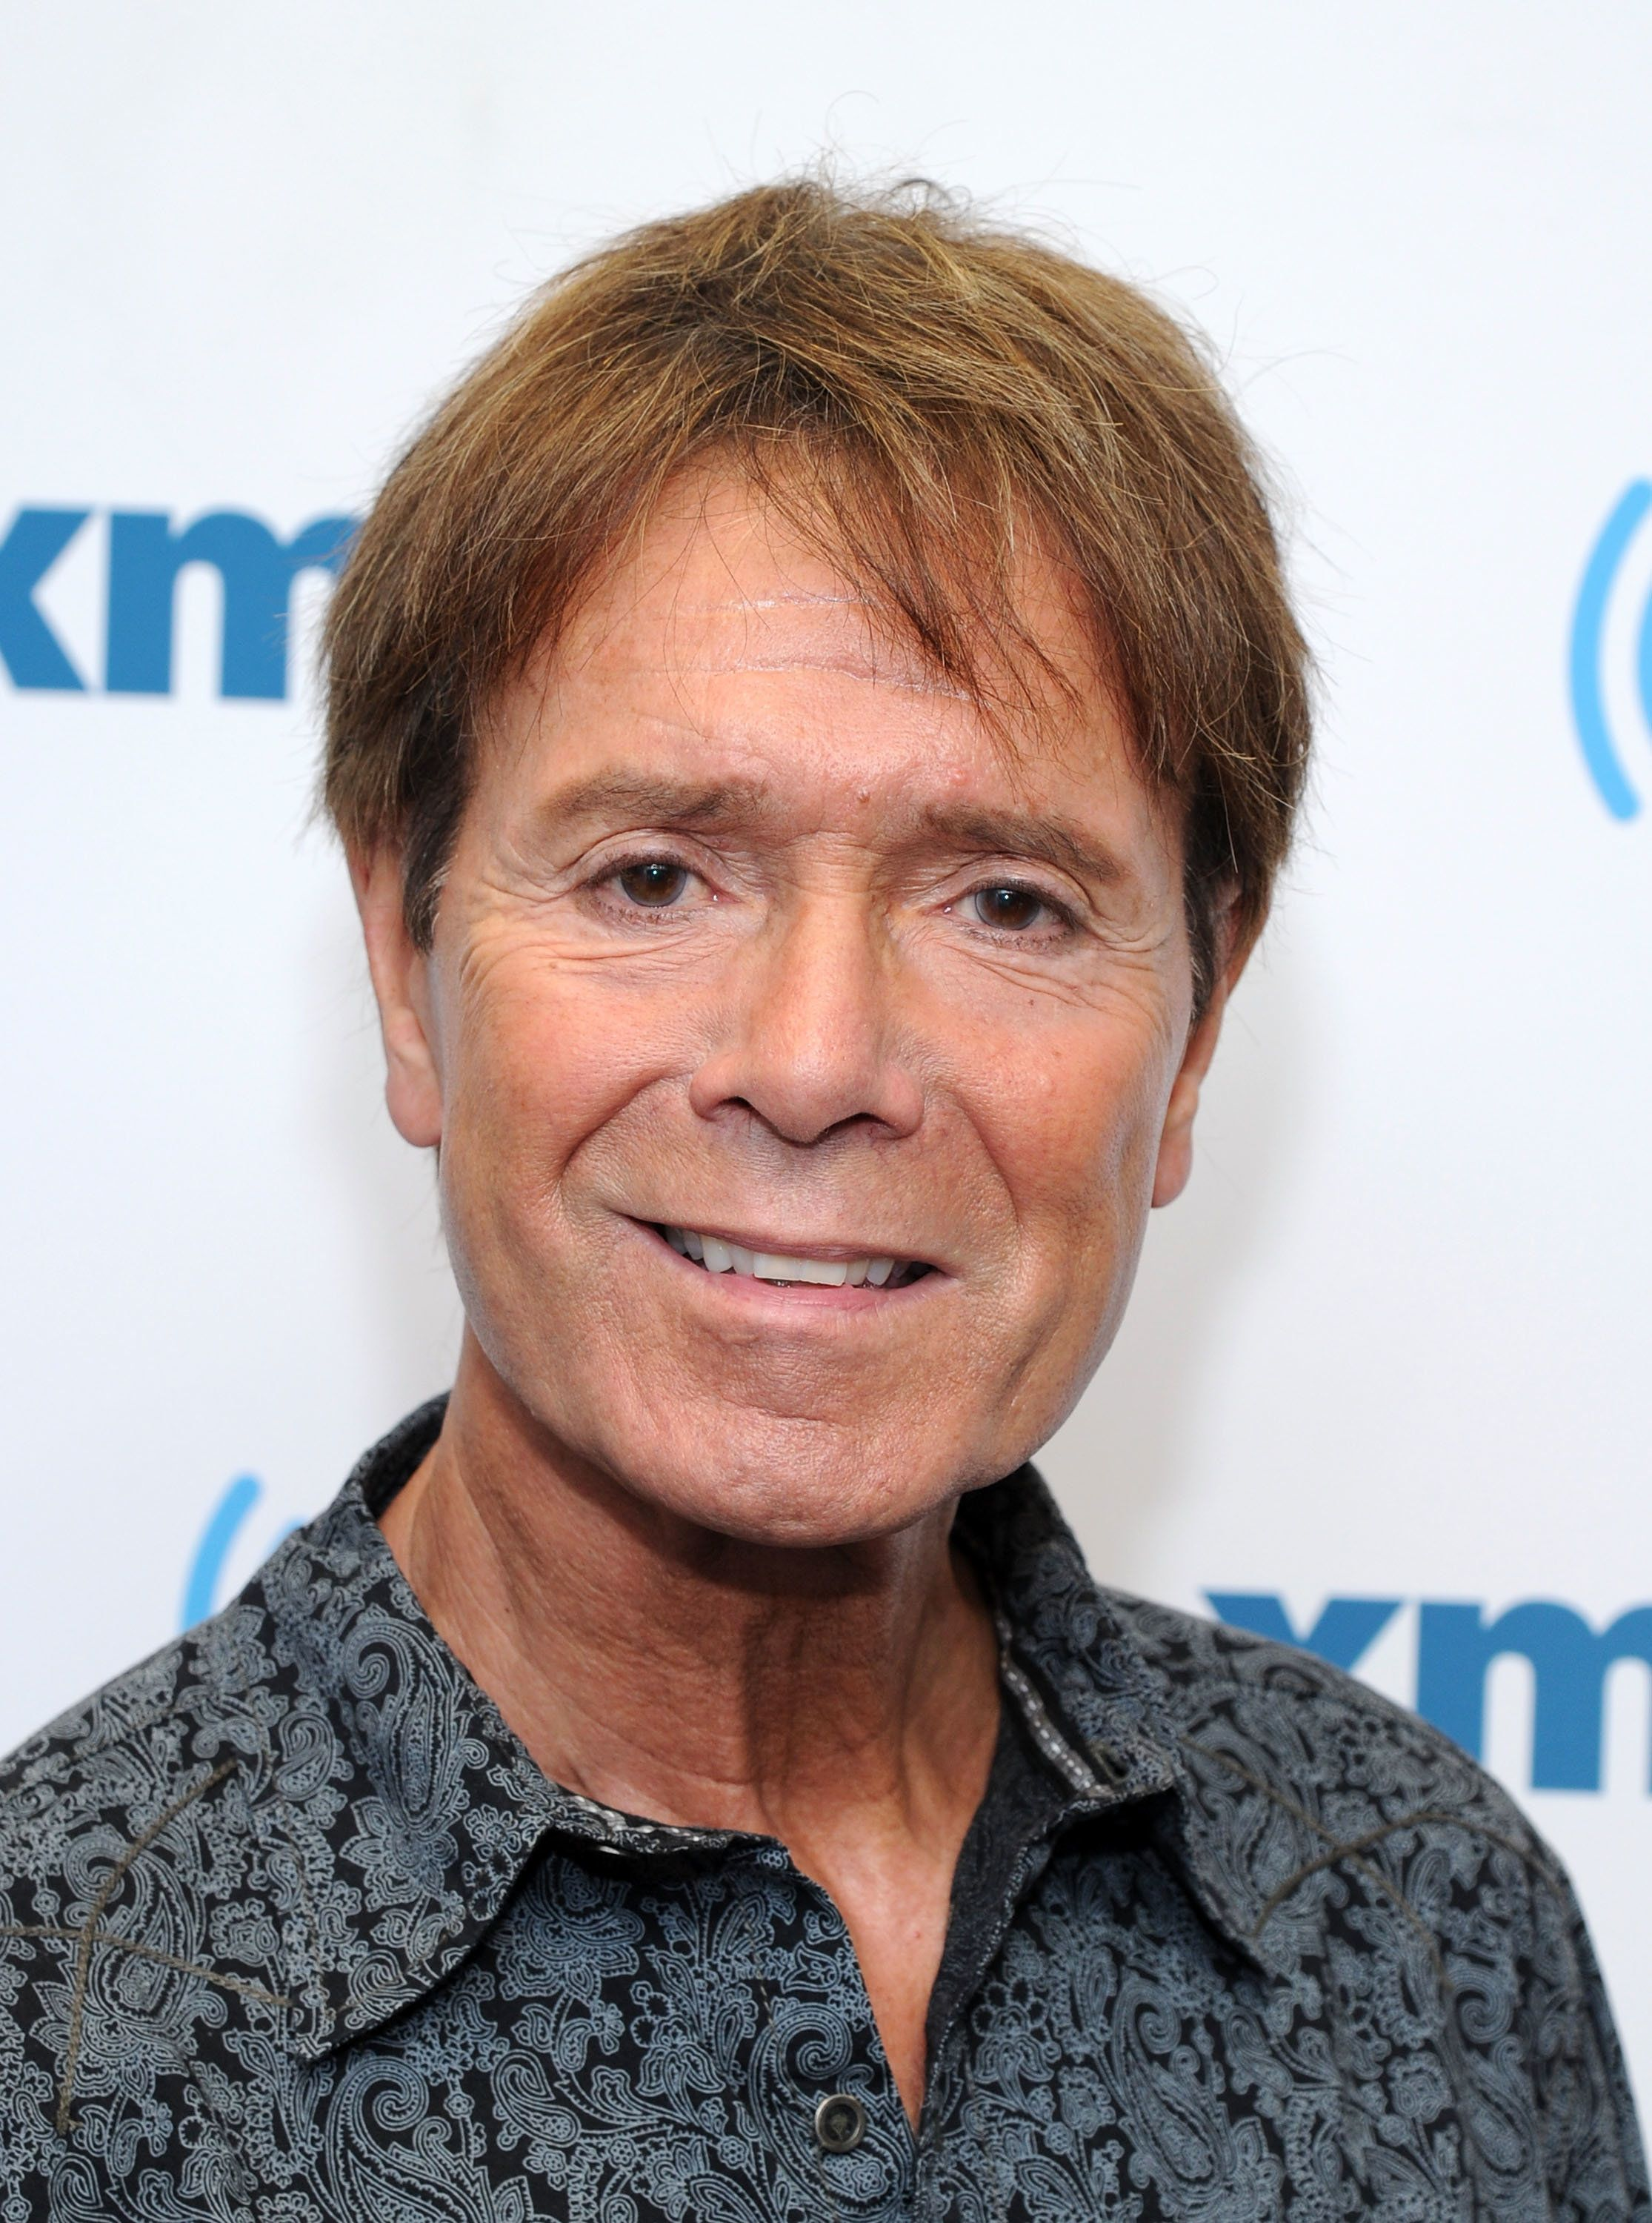 Cliff Richard Can FINALLY Get His Life Back On